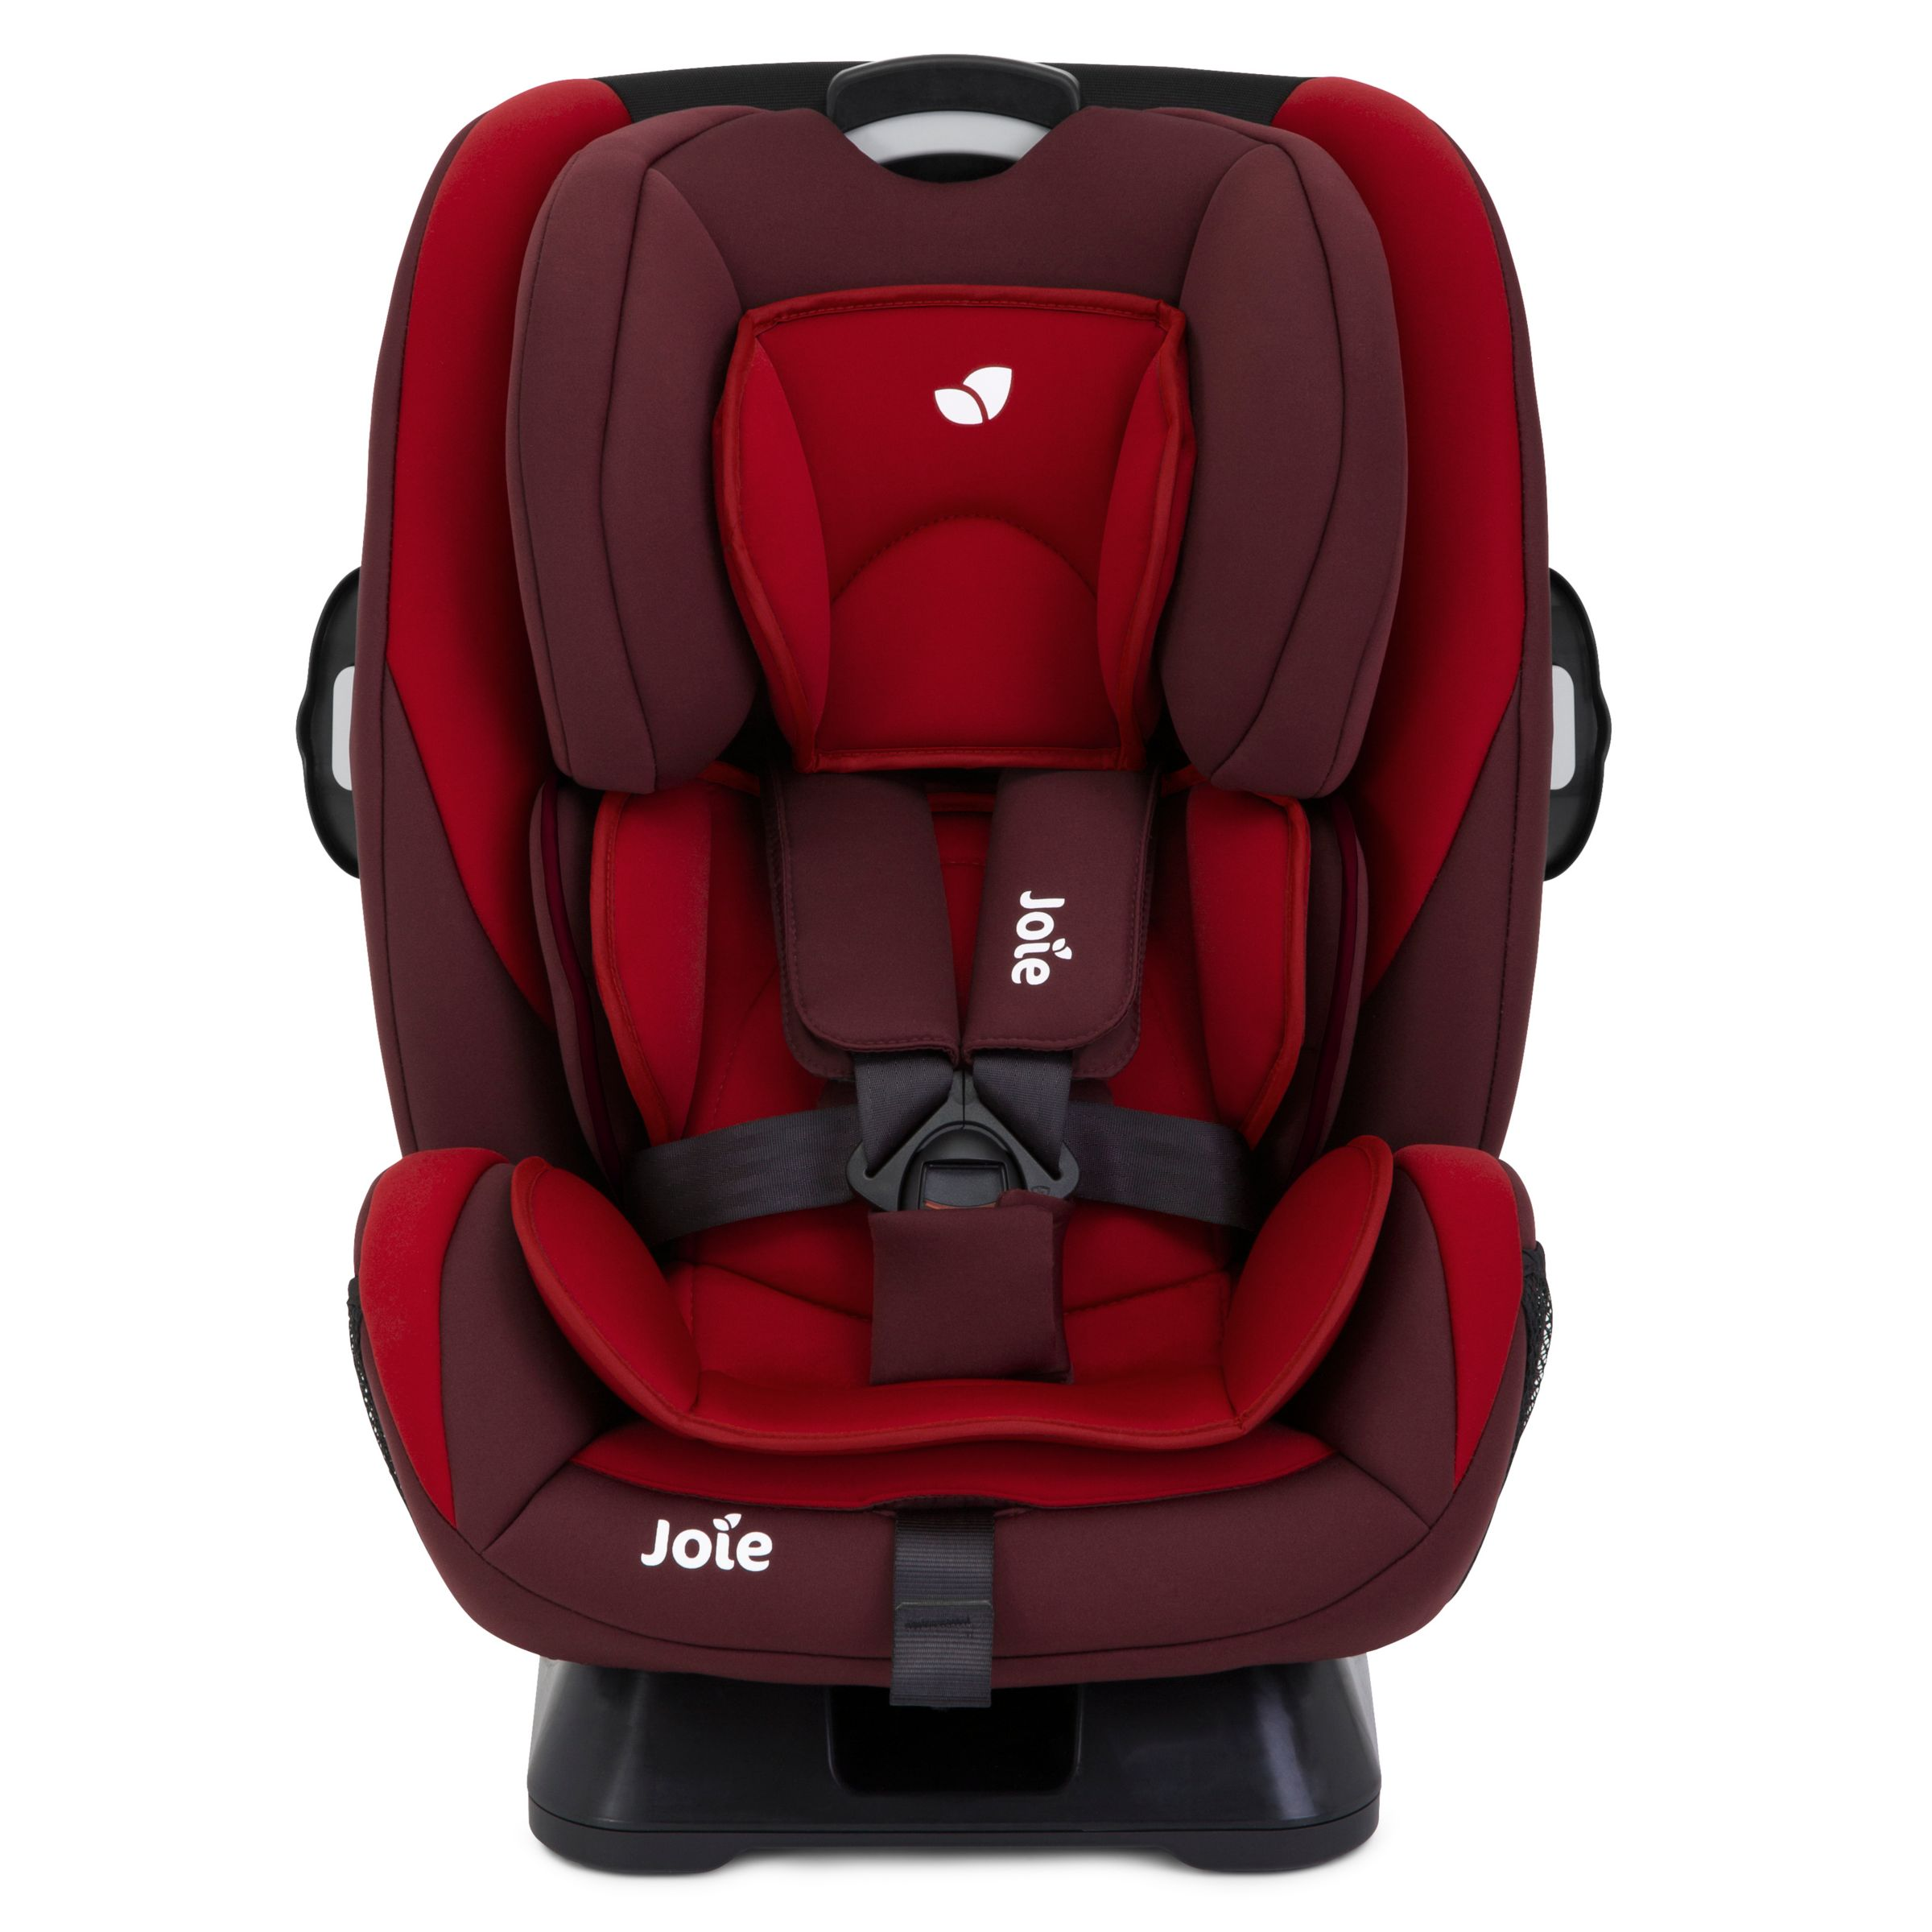 Joie Baby Joie Every Stage Group 0+/1/2/3 Car Seat, Red